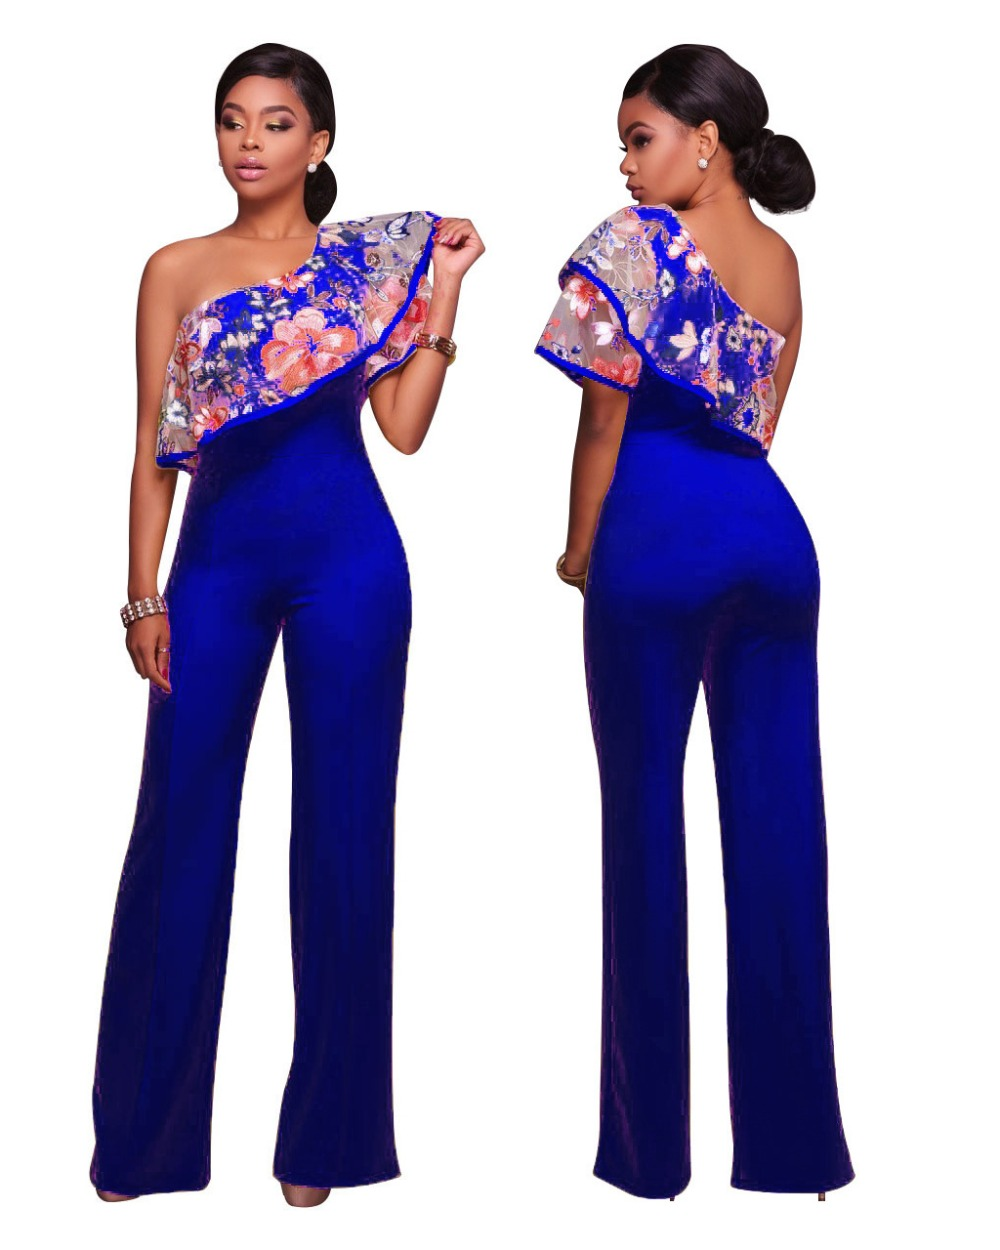 463cc1c7bb48 Women Sexy One Shoulder Embroidery Jumpsuits Rompers Ladies Black Blue  Yellow Wide Leg Loose Night Club Fashion Jumpsuits